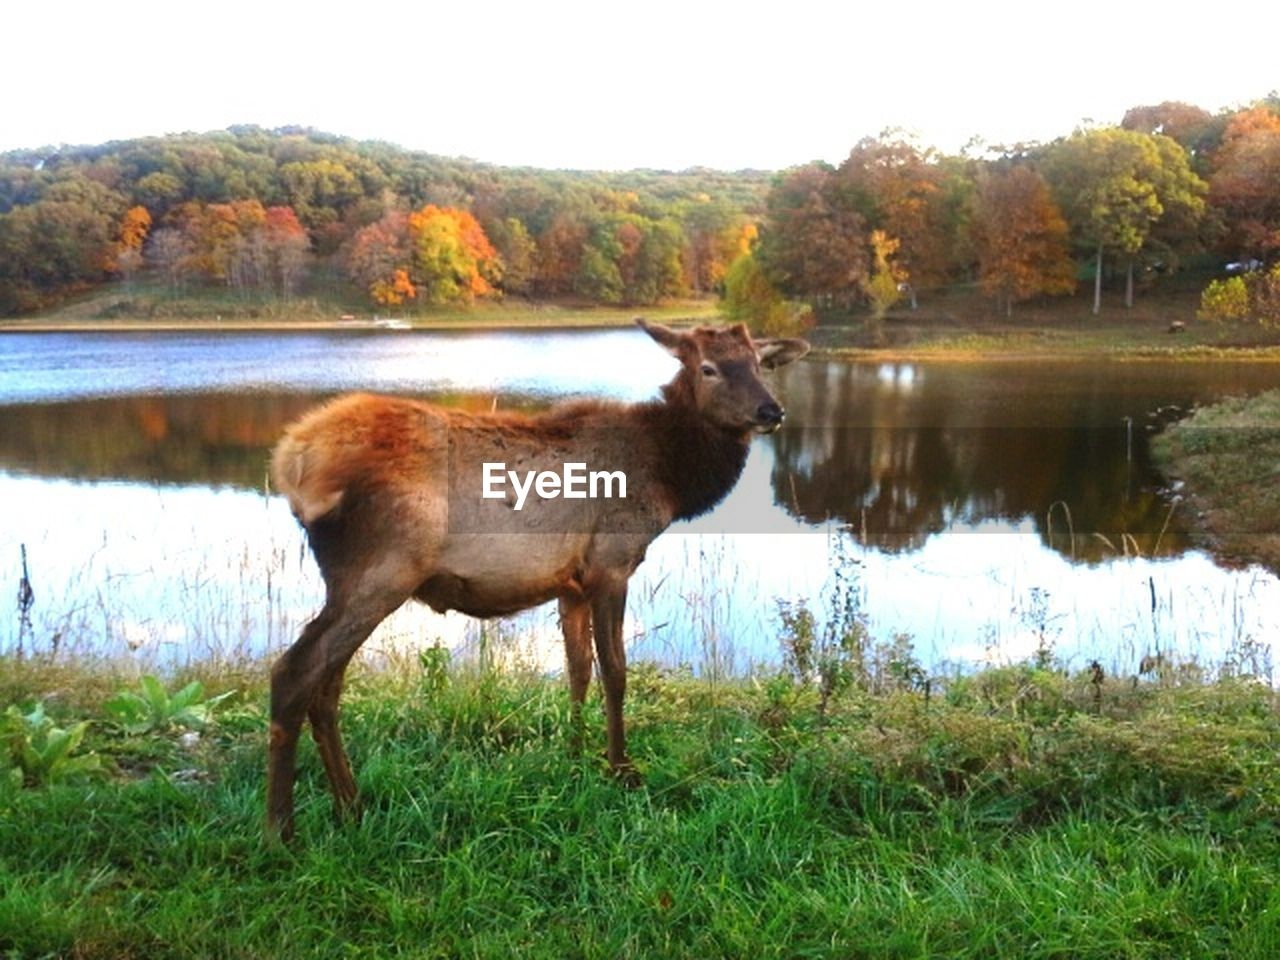 water, animal themes, one animal, grass, lake, reflection, nature, tree, domestic animals, mammal, day, outdoors, no people, standing, animals in the wild, livestock, full length, beauty in nature, moose, sky